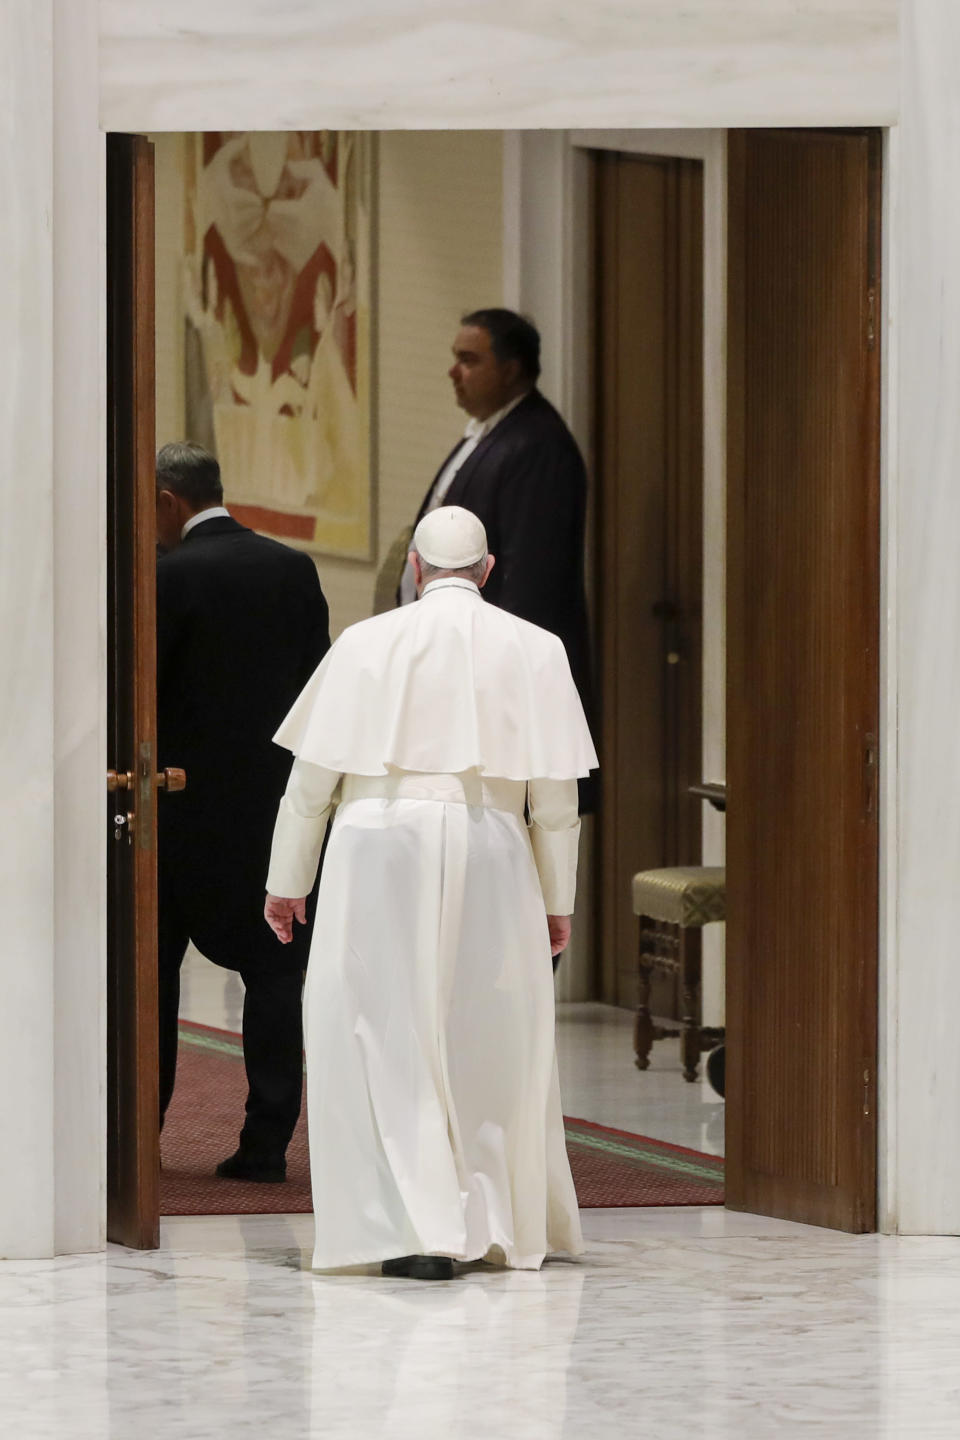 Pope Francis leaves at the end of his weekly general audience in the Pope Paul VI hall at the Vatican, Wednesday, Oct. 14, 2020. (AP Photo/Andrew Medichini)